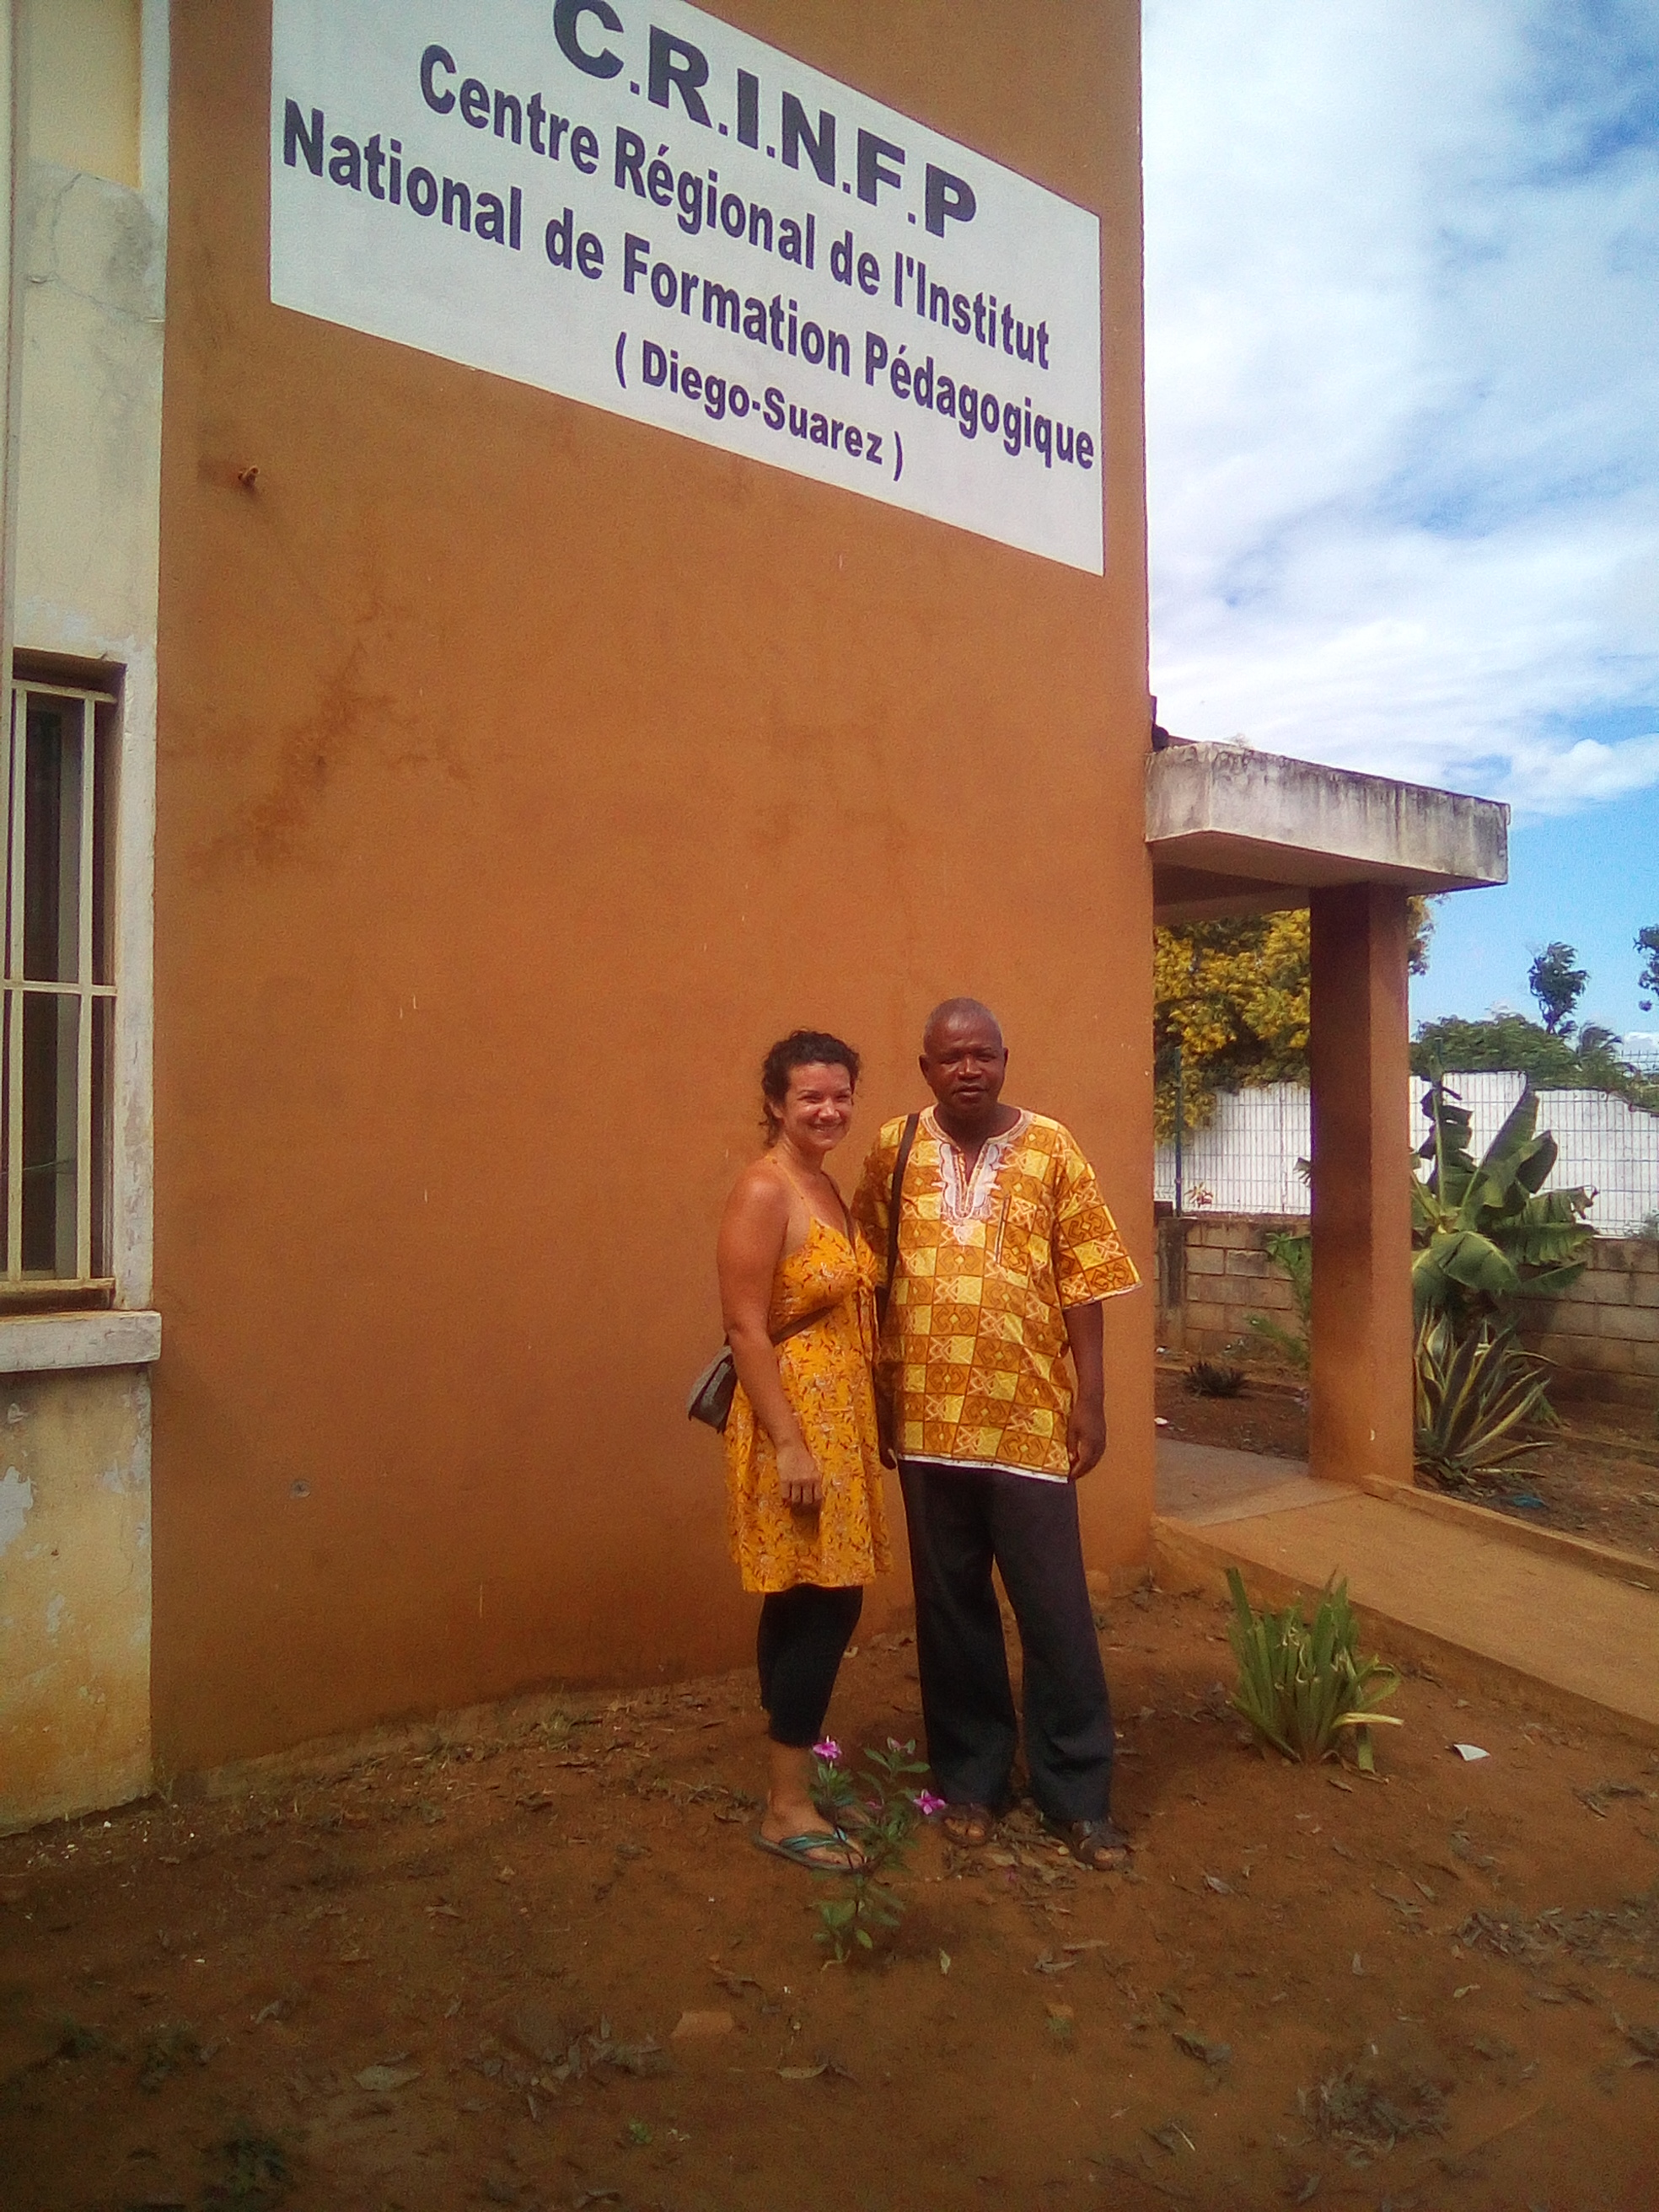 With a colleague at my third year posting, working with a teacher's college in Diego-Suarez, Madagascar